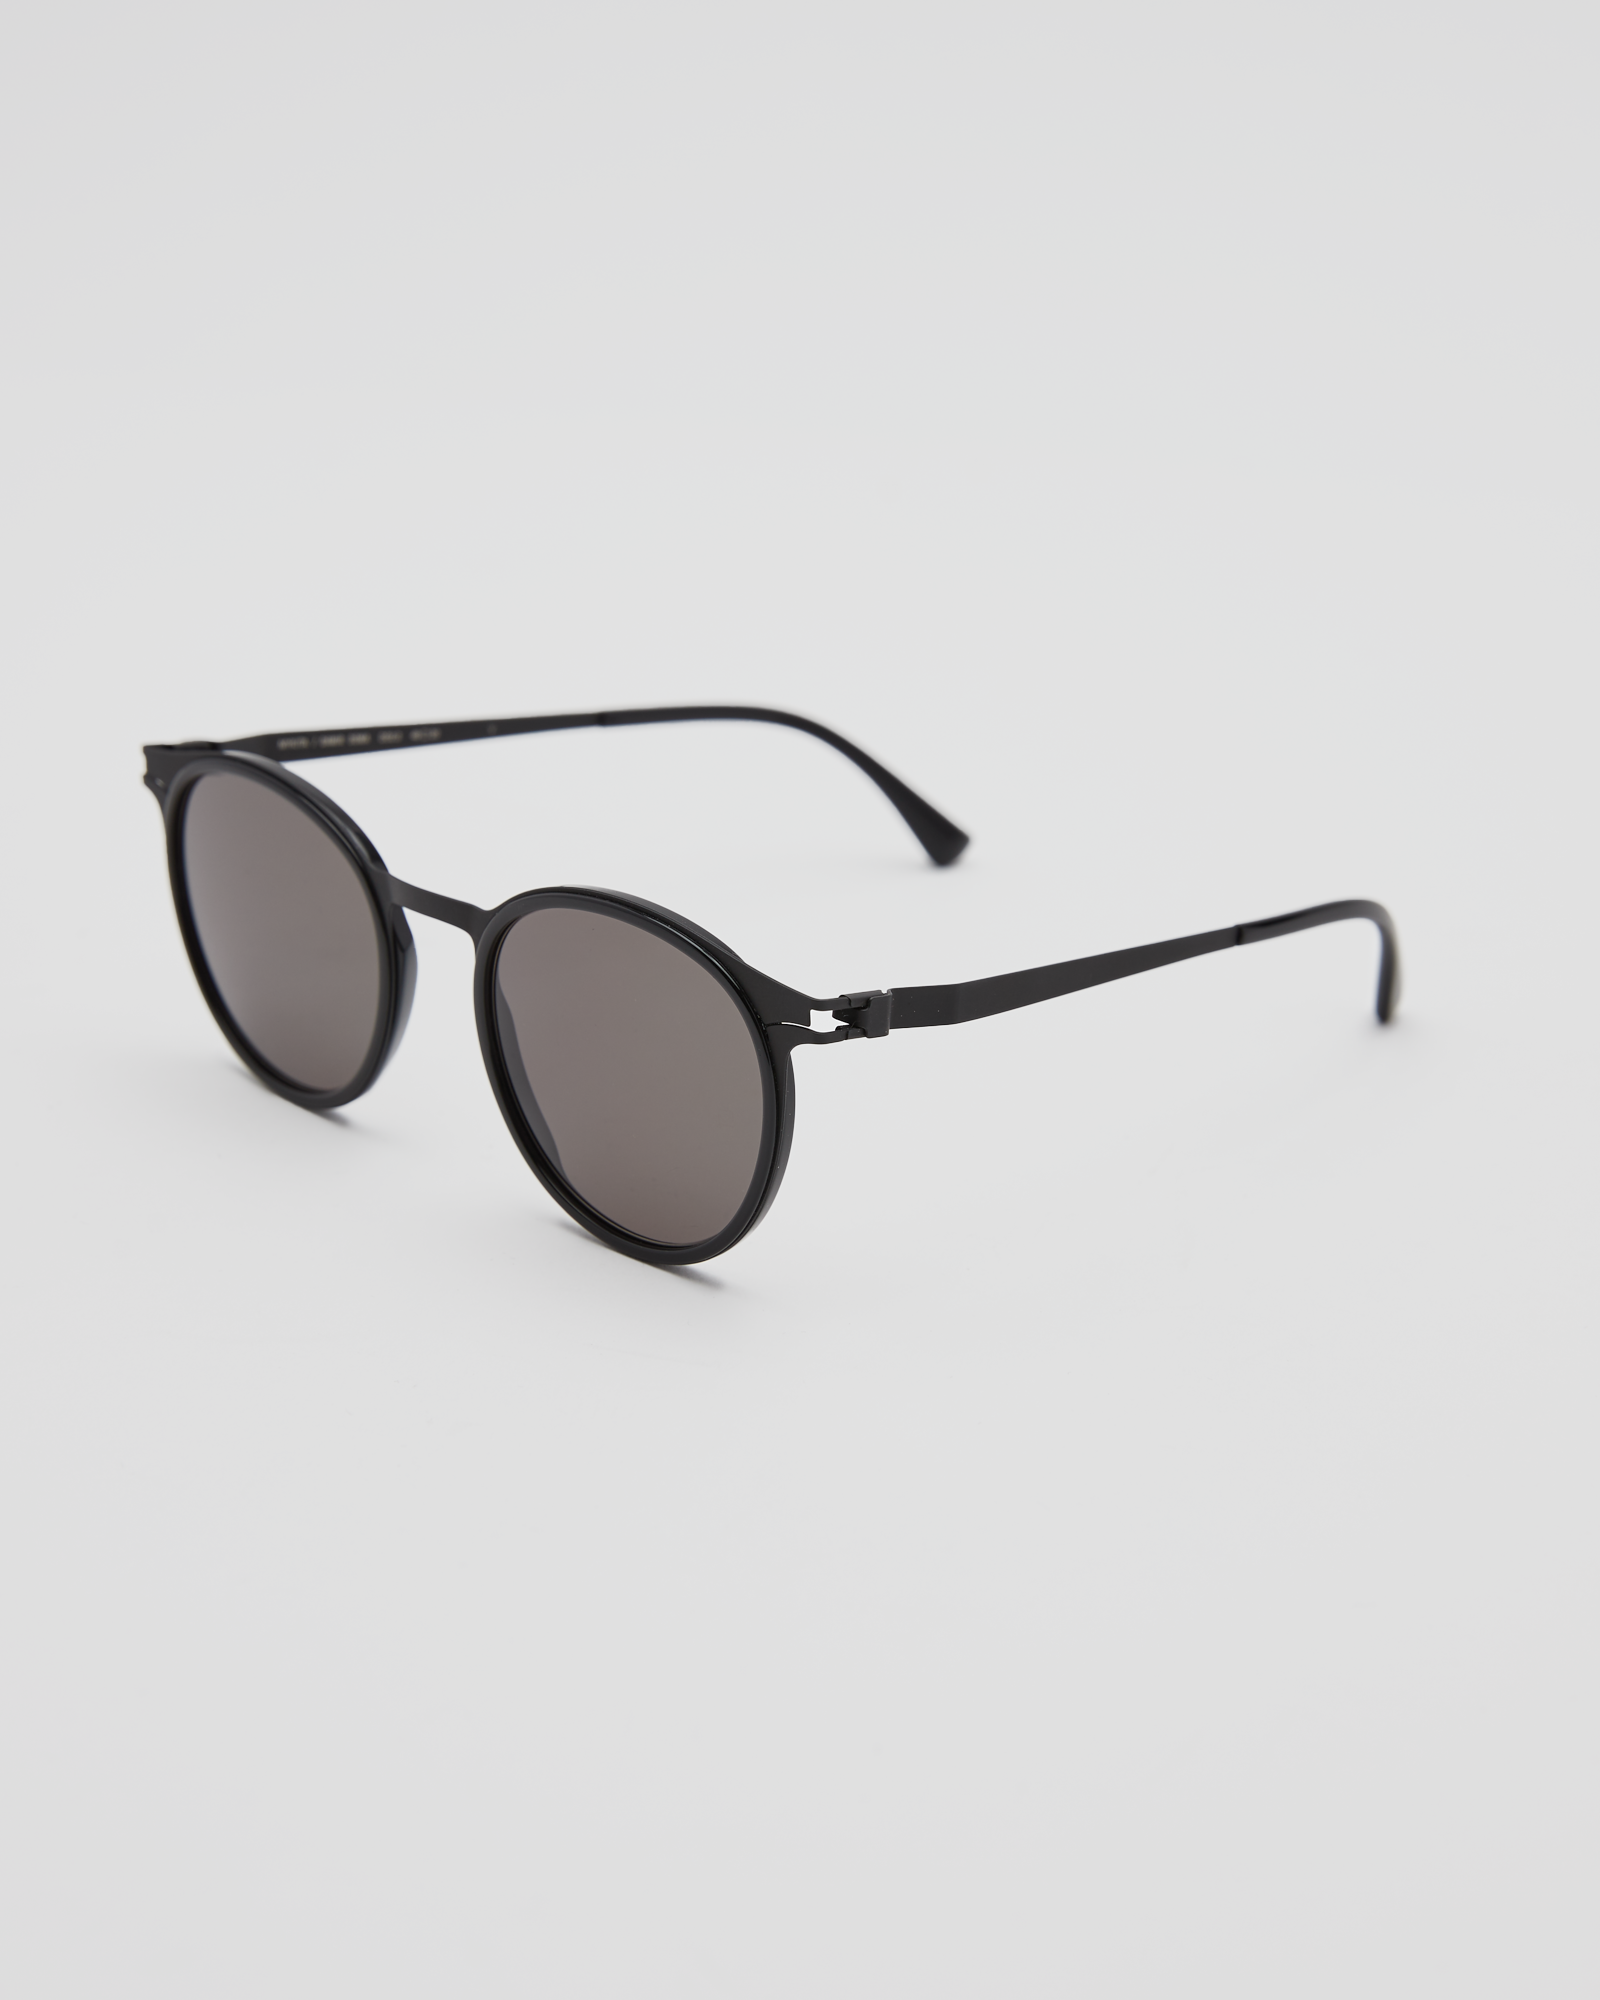 DD2.3 A-6 Sunglasses In Black / Gray Solid